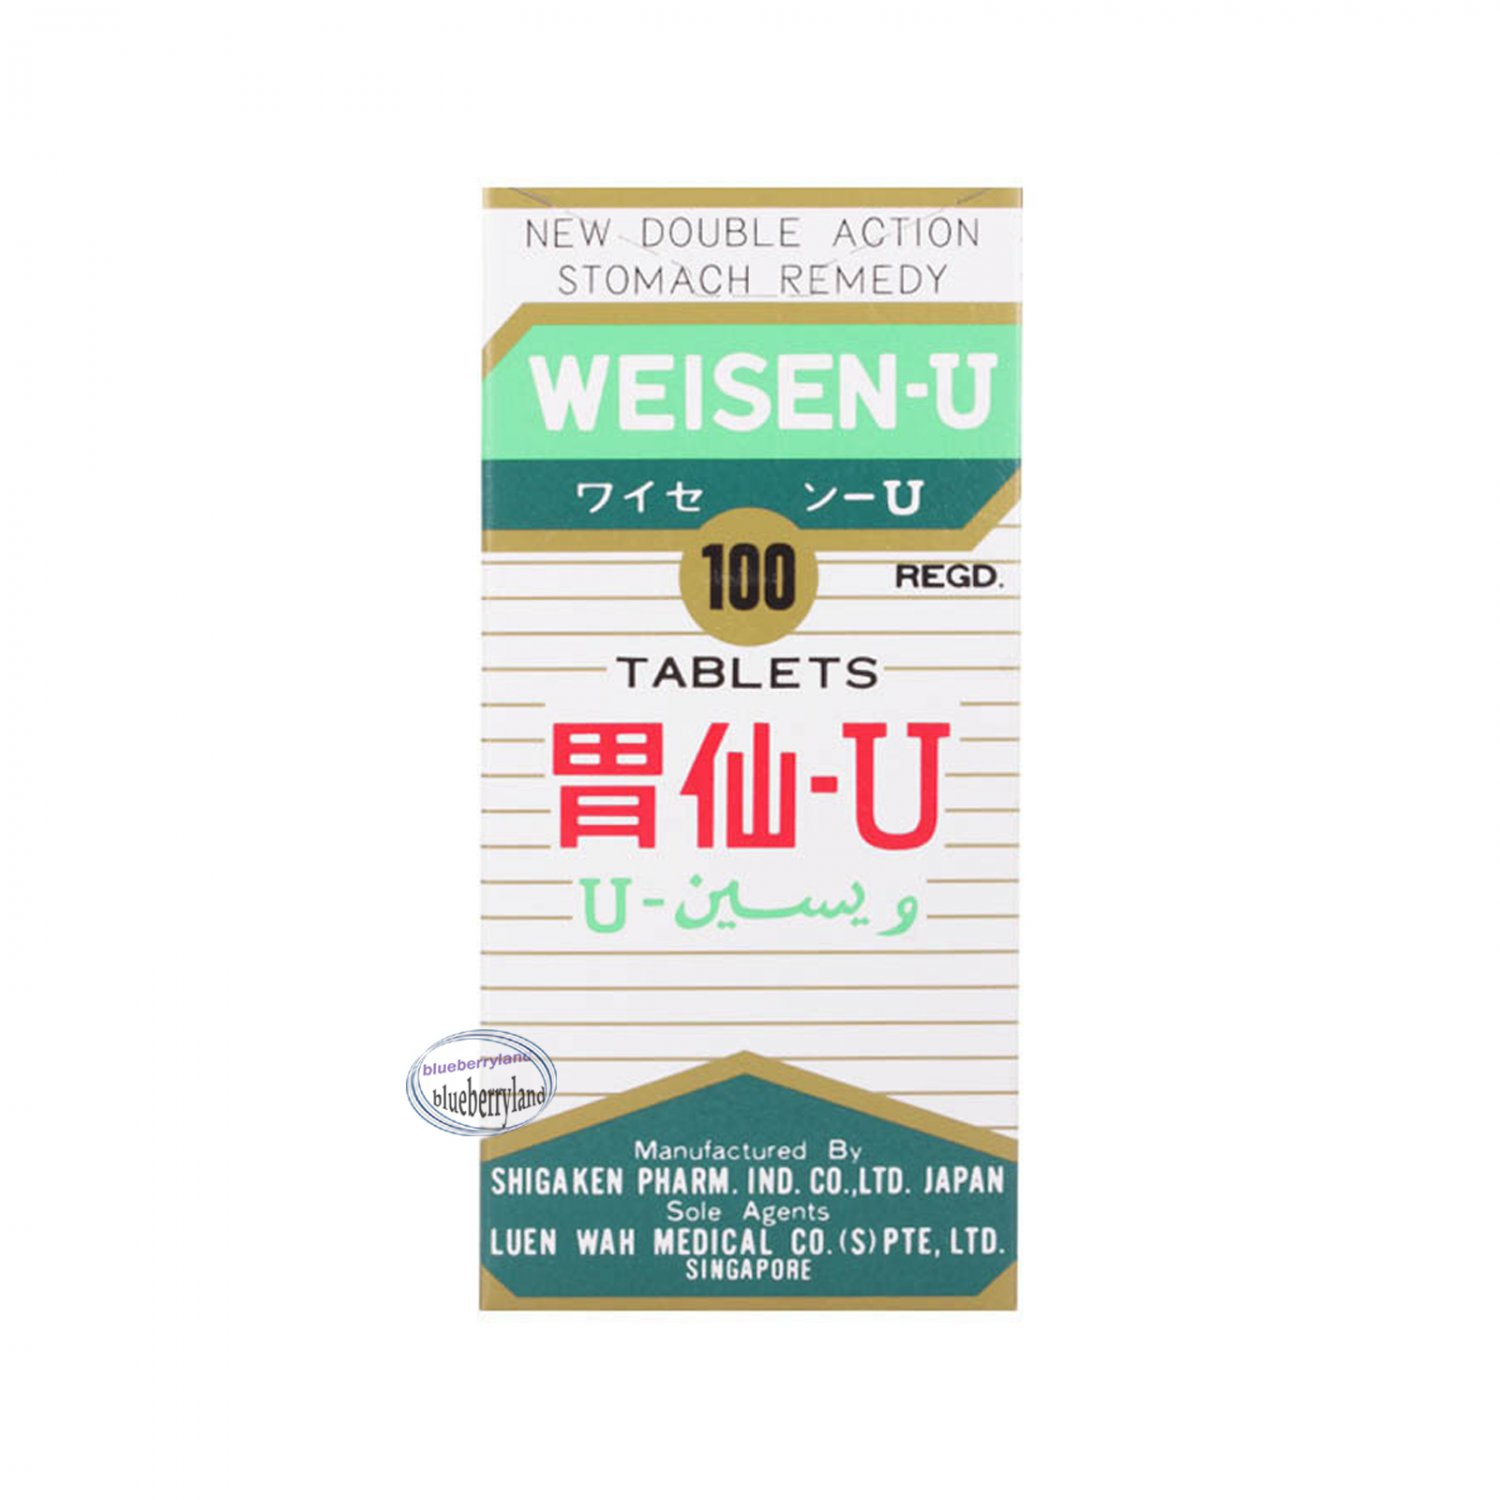 Weisen-U New Double Action Stomach Remedy 100 Tablets Pills ��-U